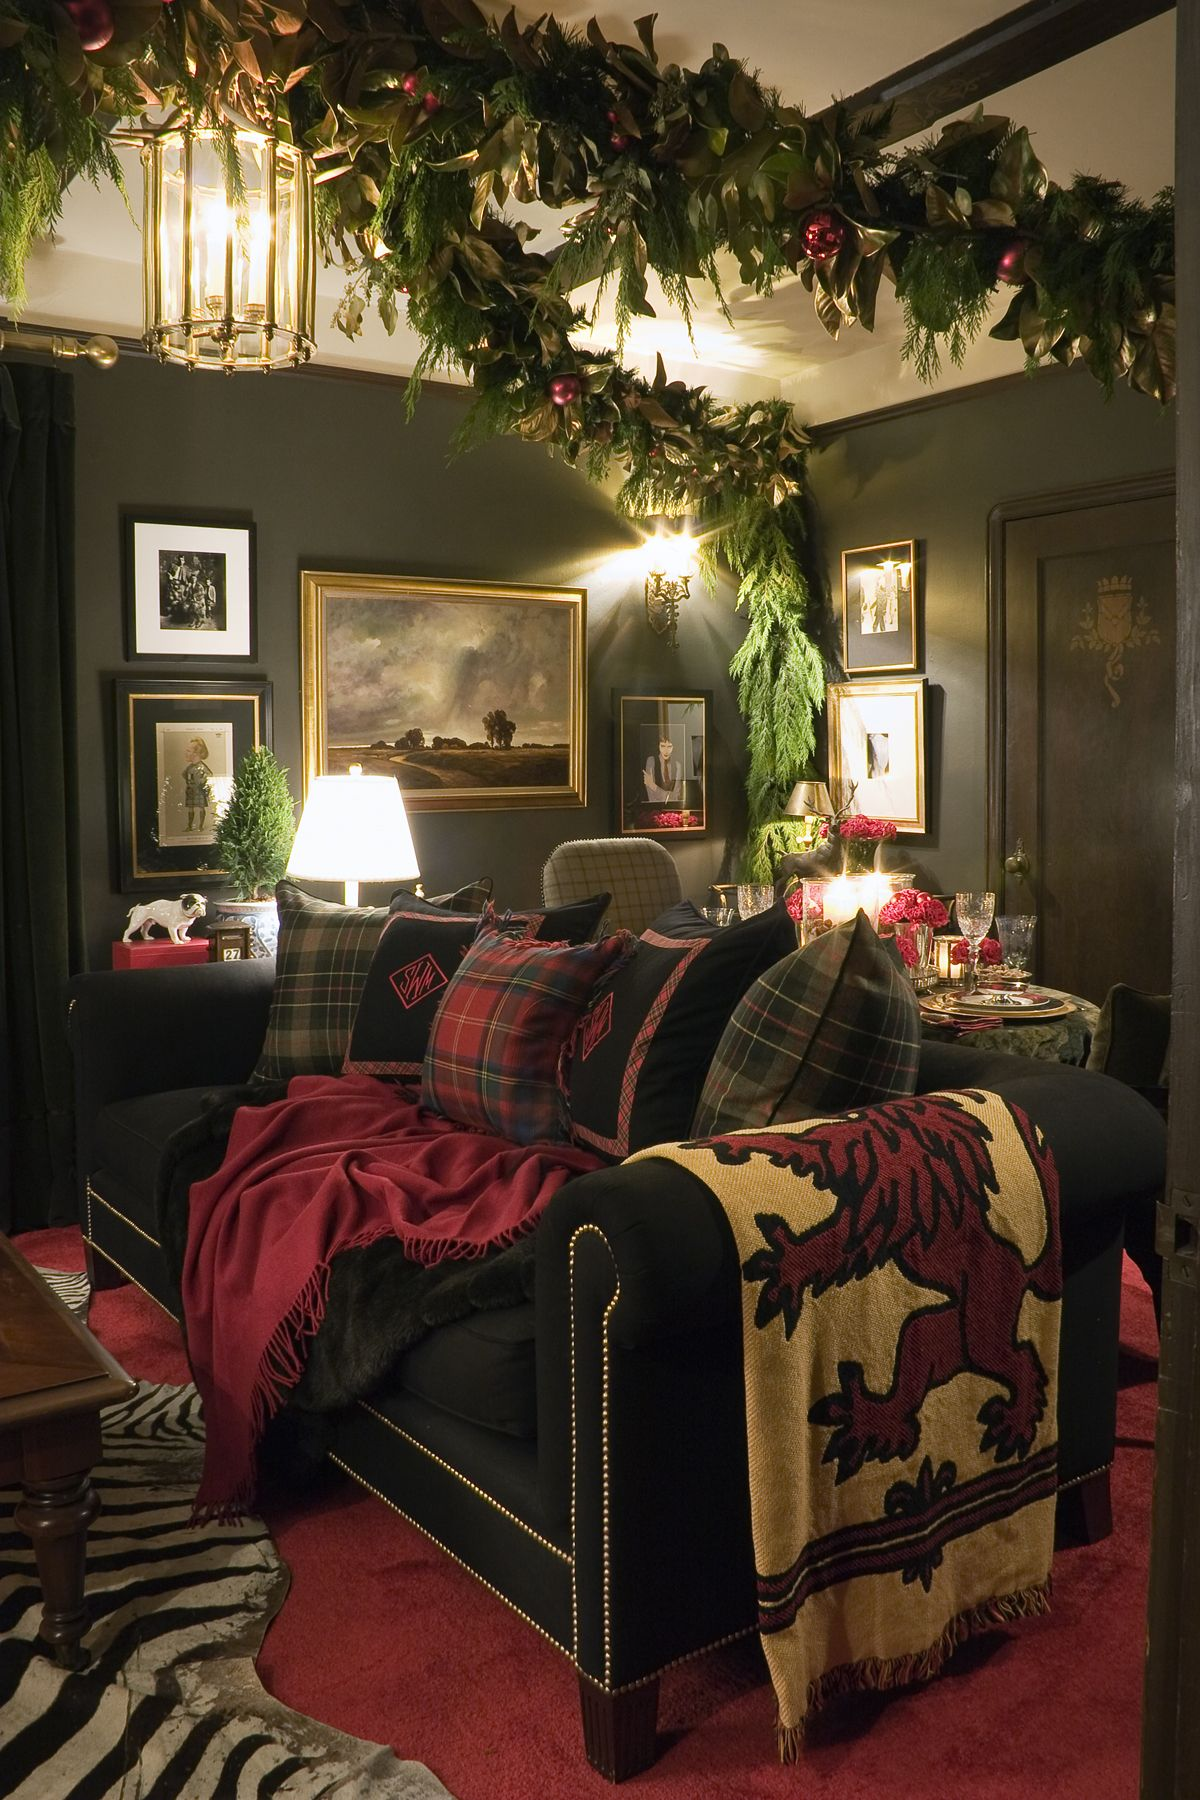 English Country Christmas Living Rooms Christmas Decorations